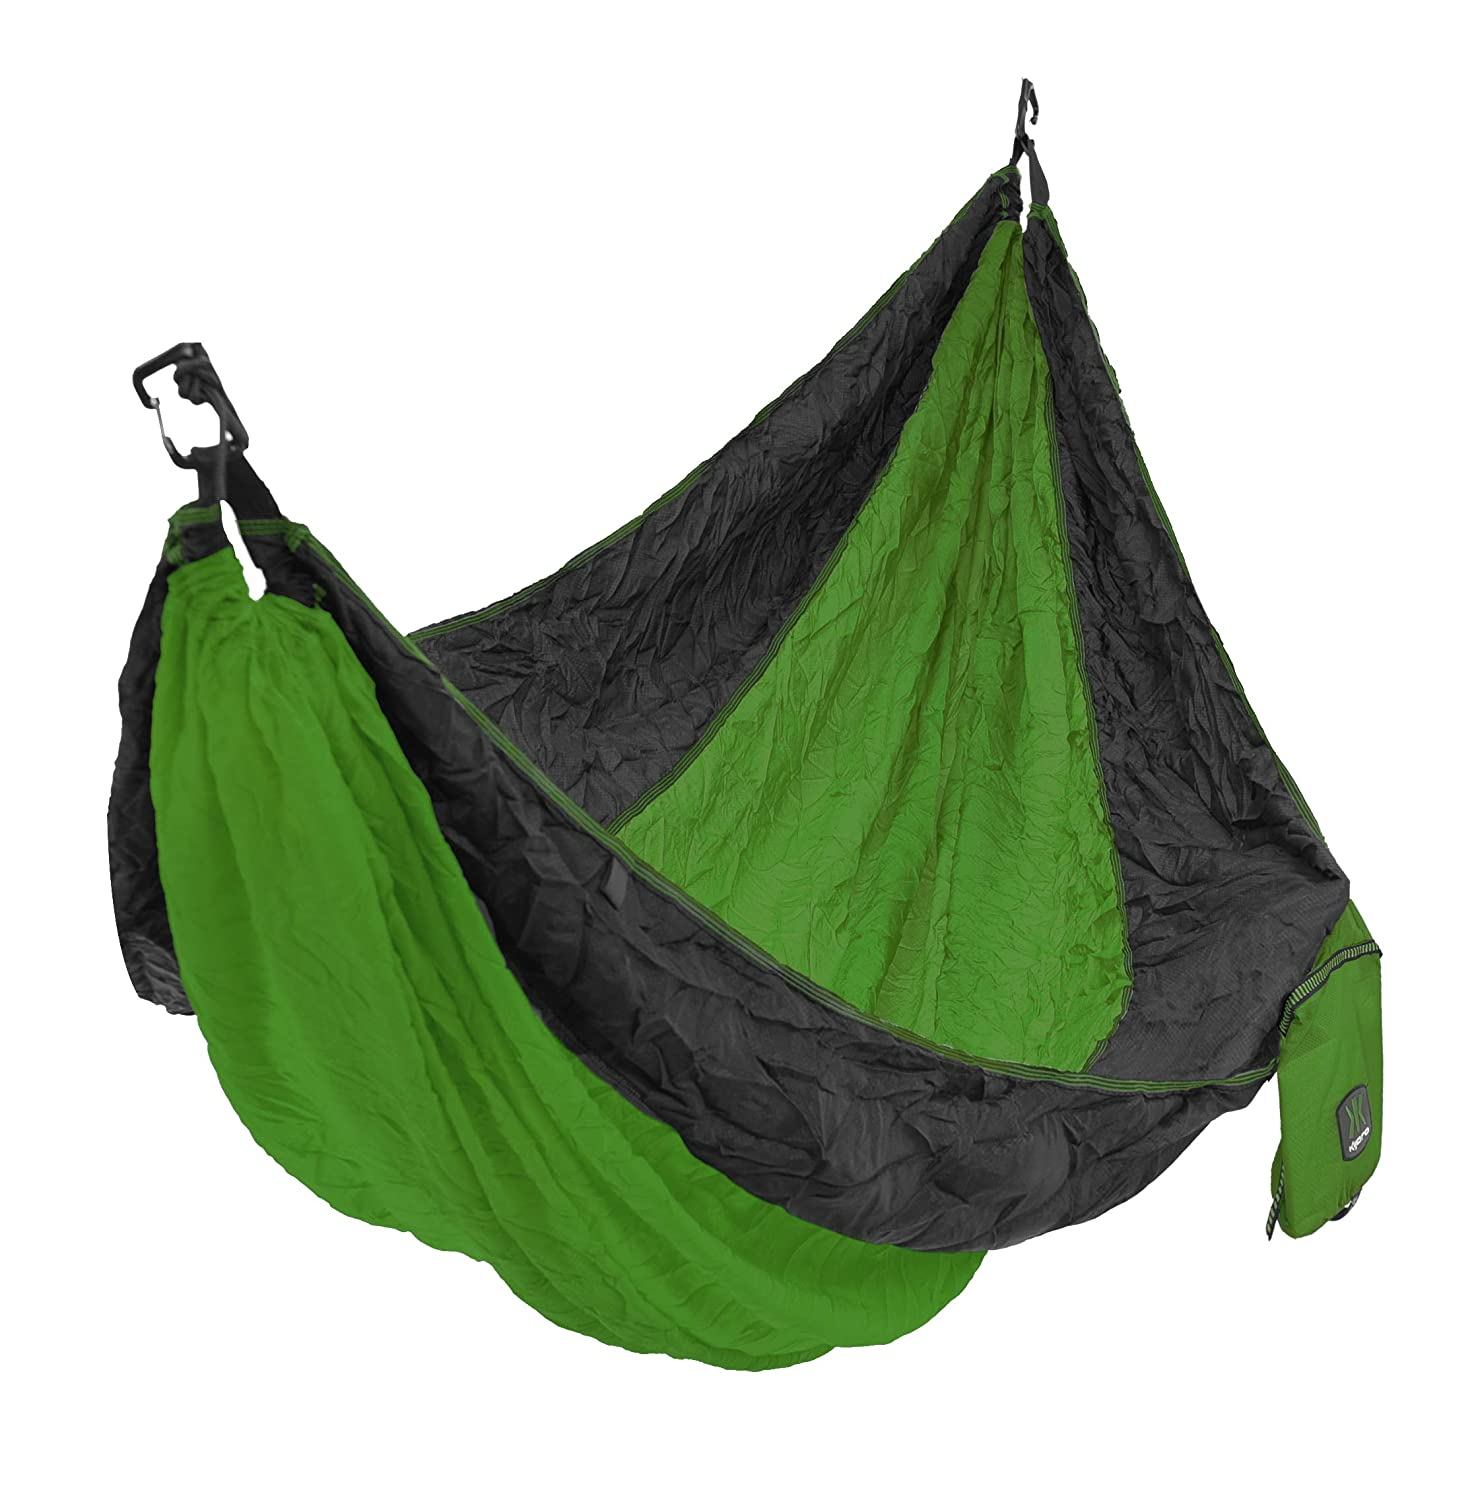 Durable Nylon Ripstop with 2 Carabiners Ionian Turquoise 80720 Kijaro Double Lightweight Portable Camping Hammock